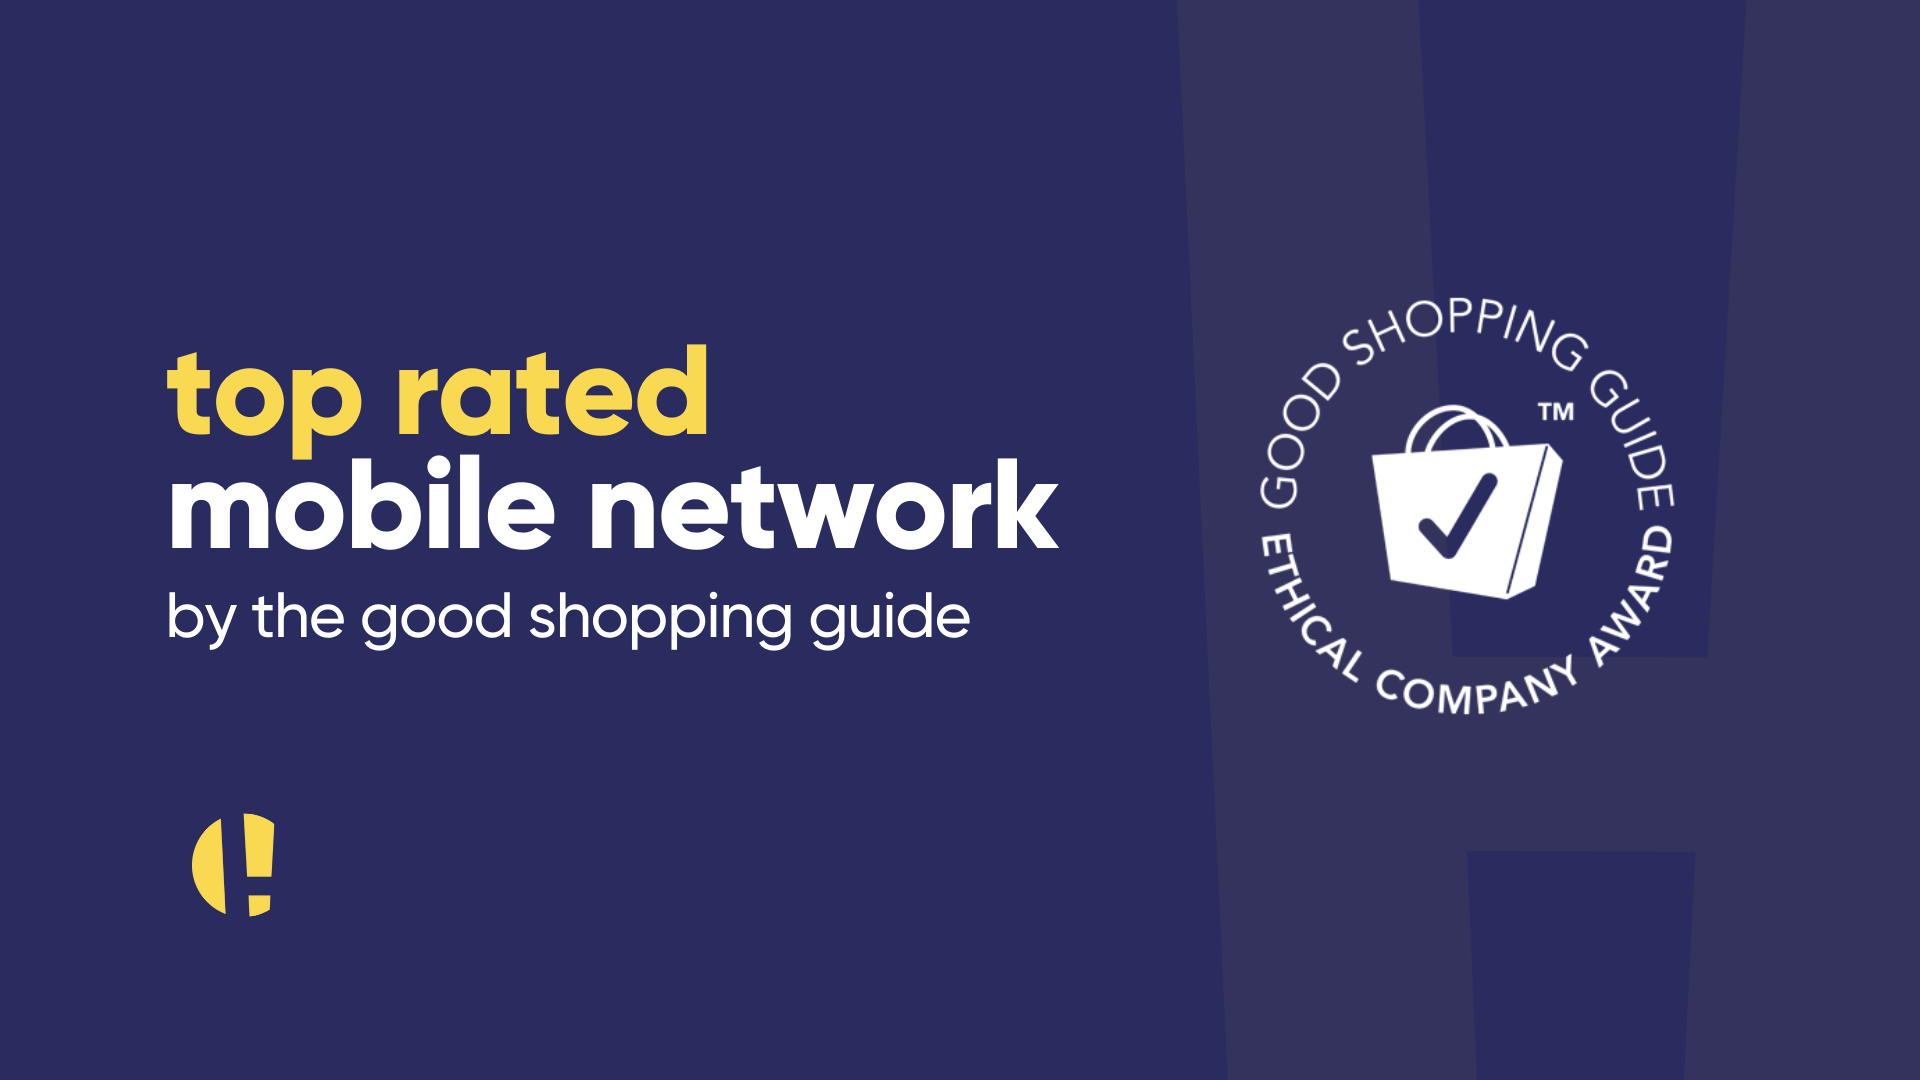 Top rated mobile network - good shopping guide - ethical company award